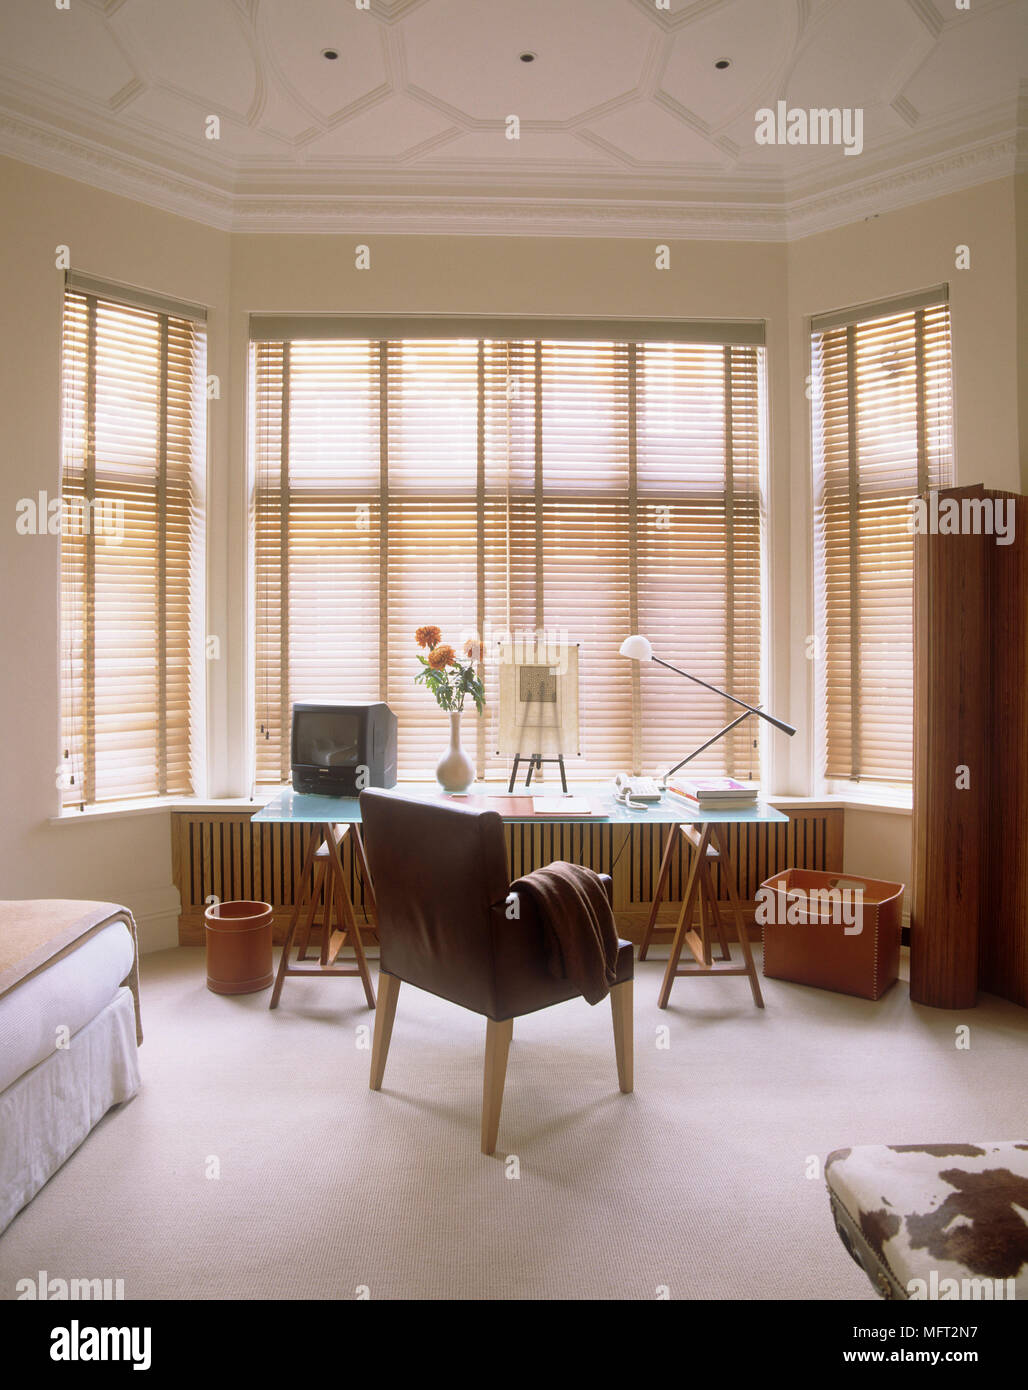 Glass Top Table In Bedroom With Upholstered Chair Set In Bay Window Stock Photo Alamy